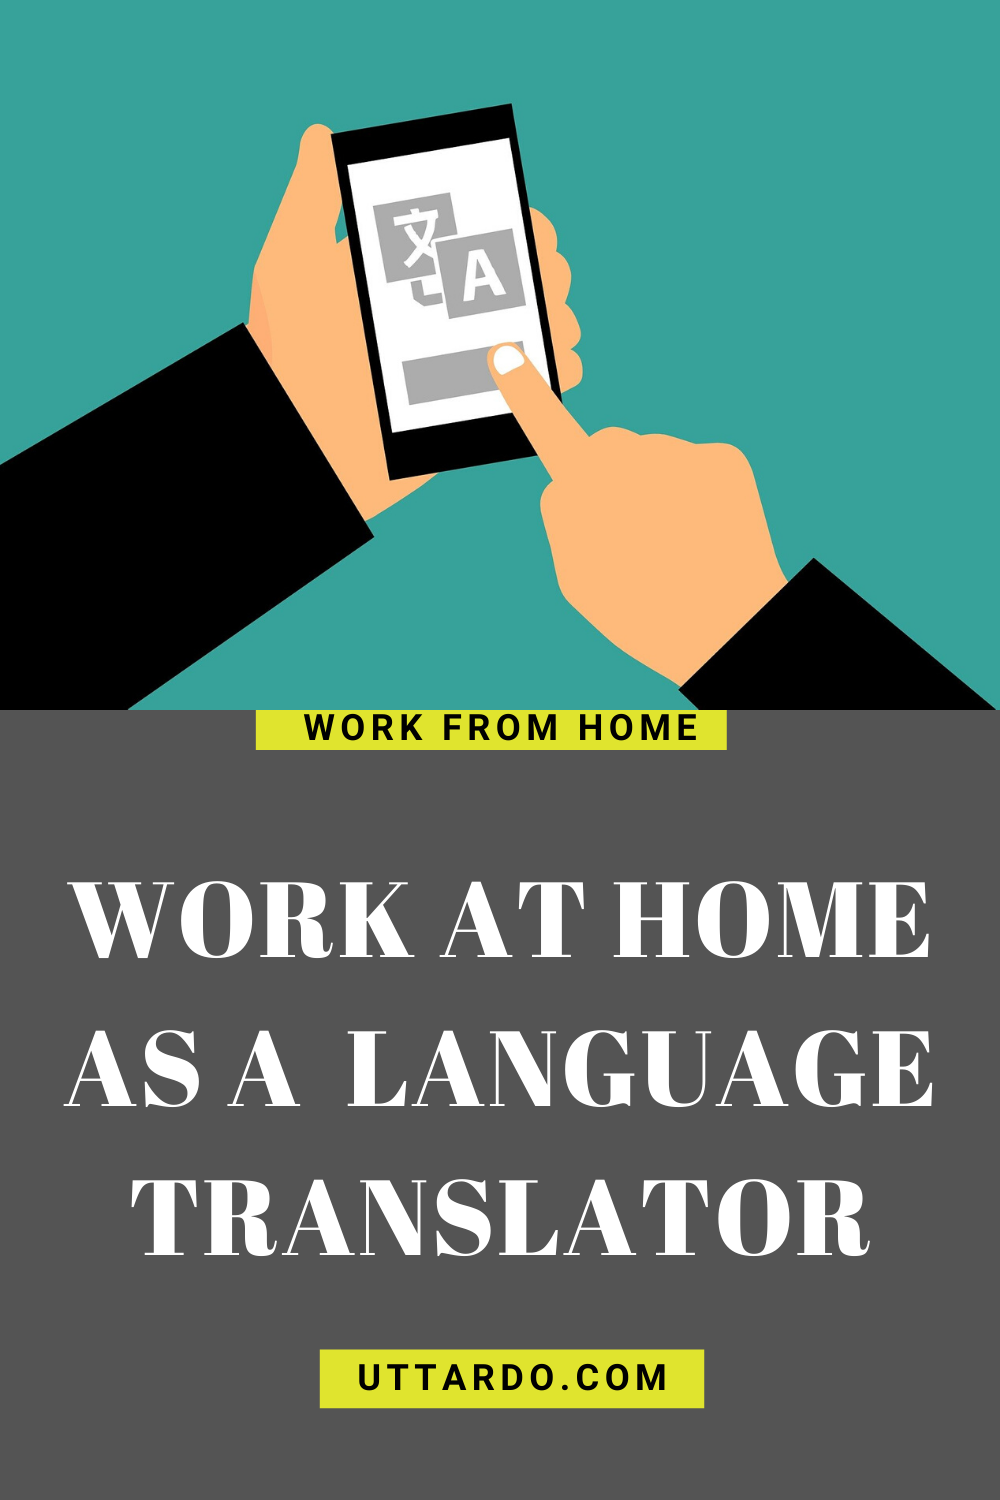 Work At Home As A Language Translator In 2020 Work From Home Jobs Earn Money Online Working From Home